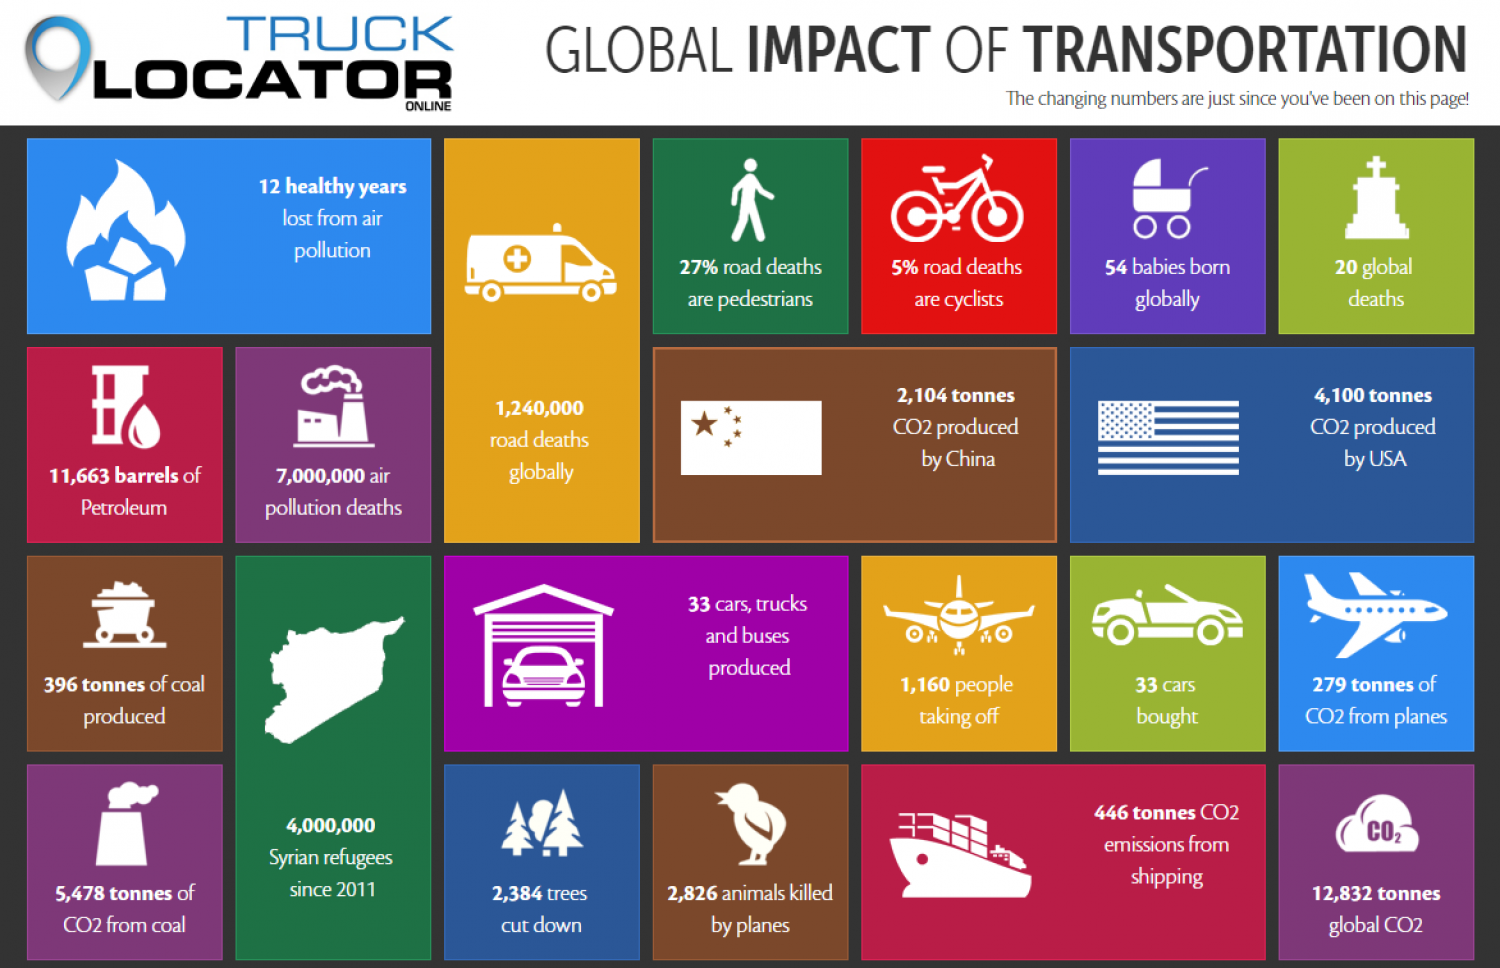 Global Impact of Transportation Infographic